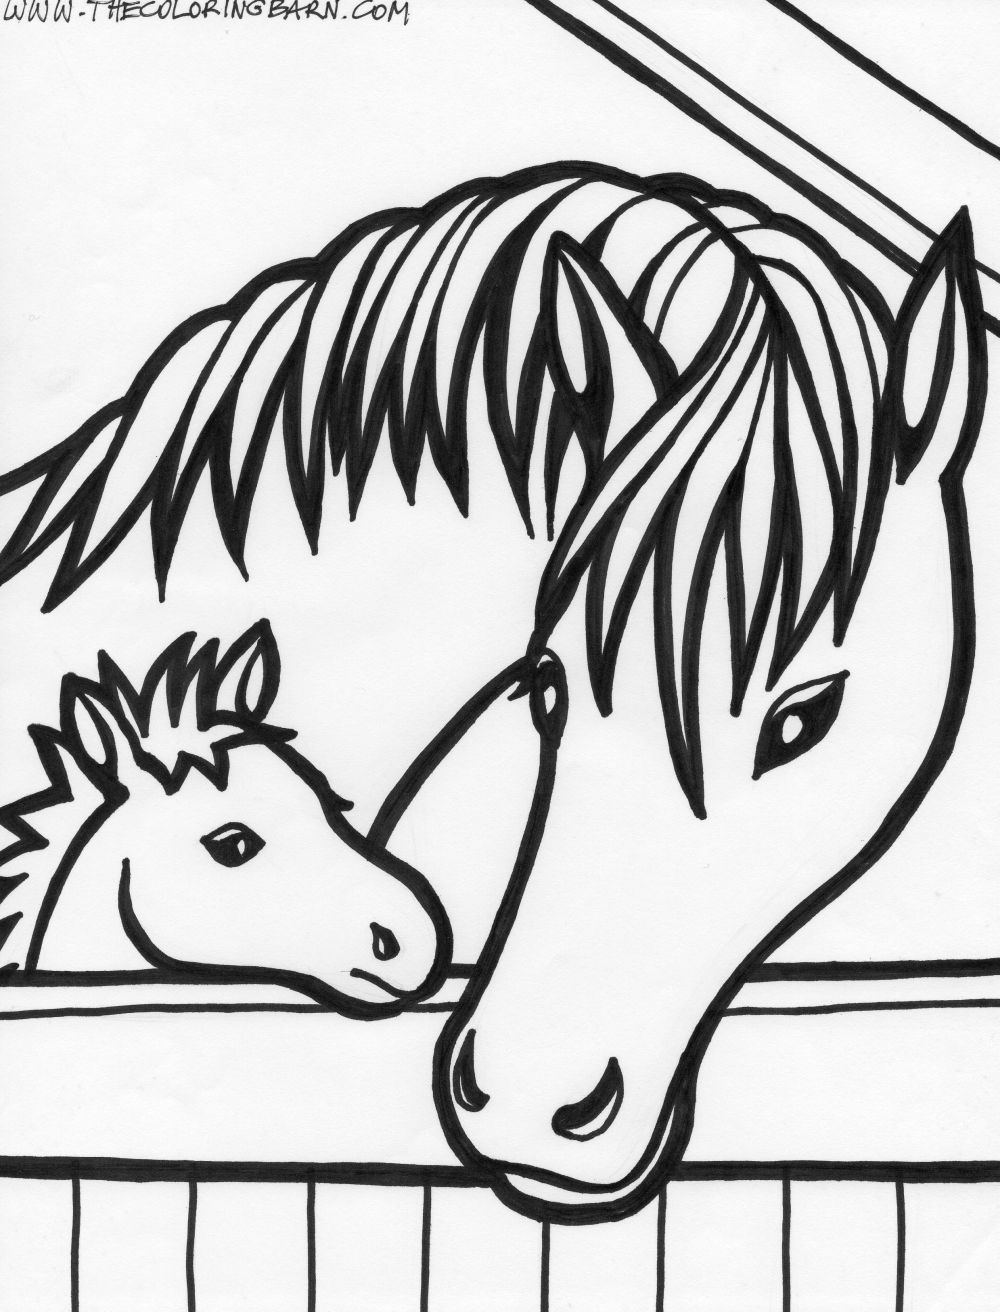 1000x1312 Horse Head Coloring Pages To Print, Horse Head Coloring Pages